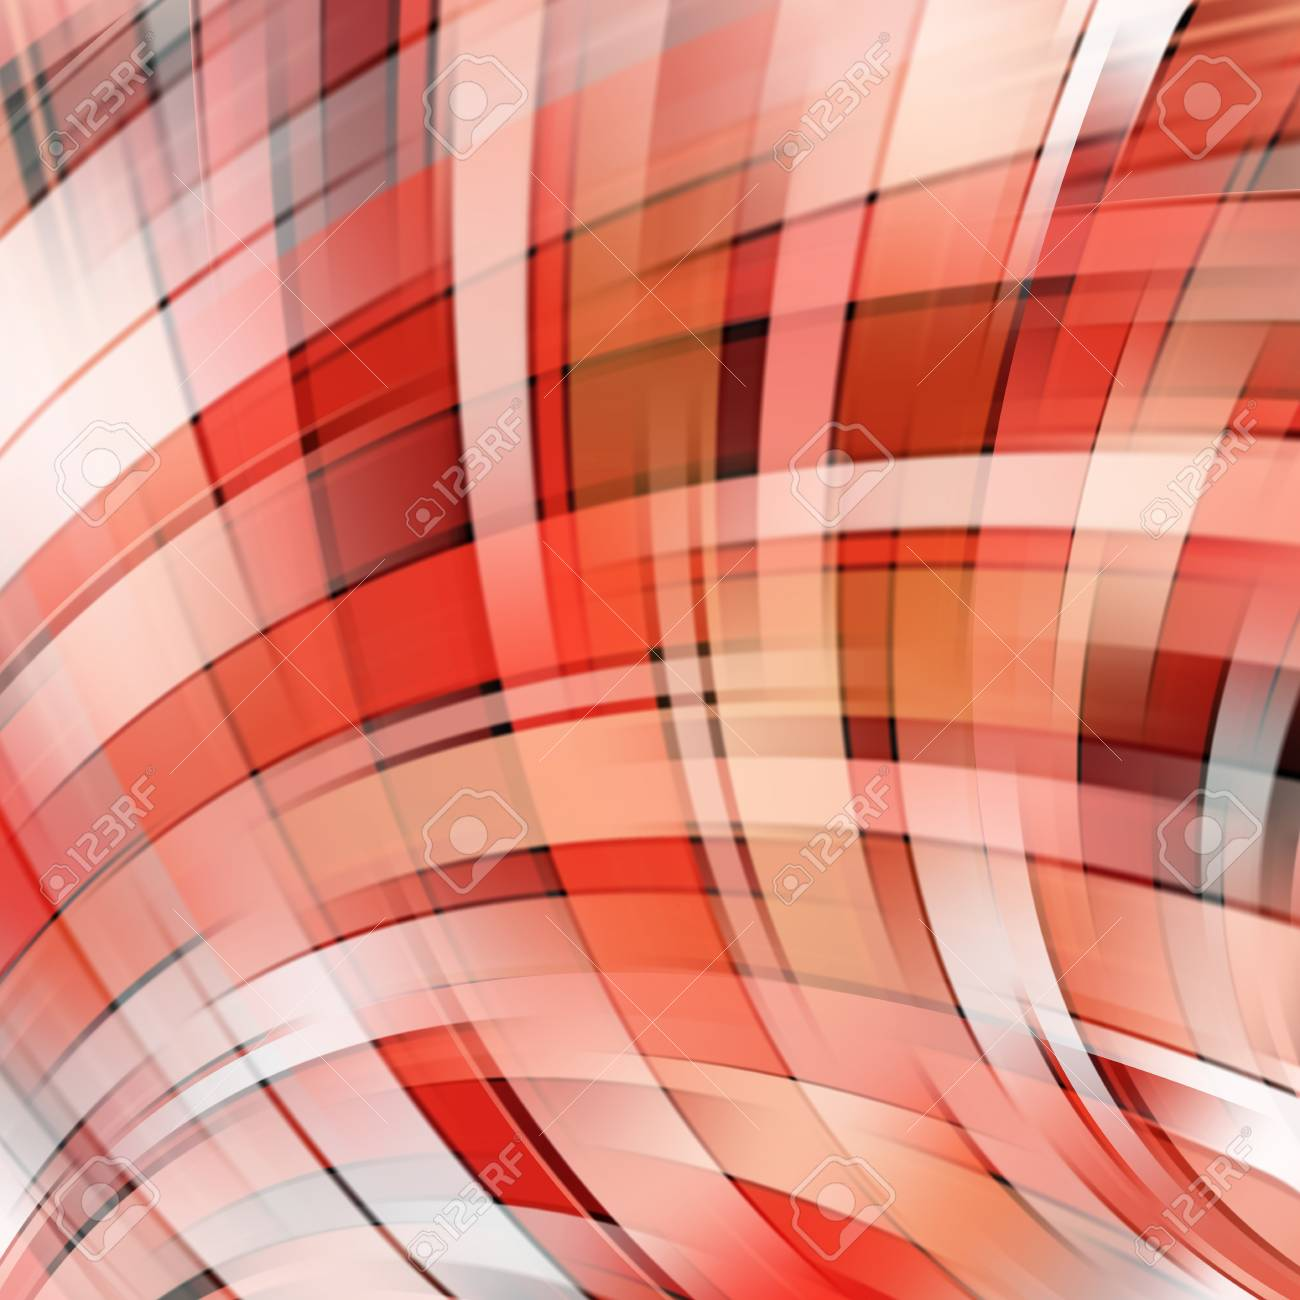 Shine Glow Background Wallpaper Pattern Abstract Shapes Red White Colors Stock